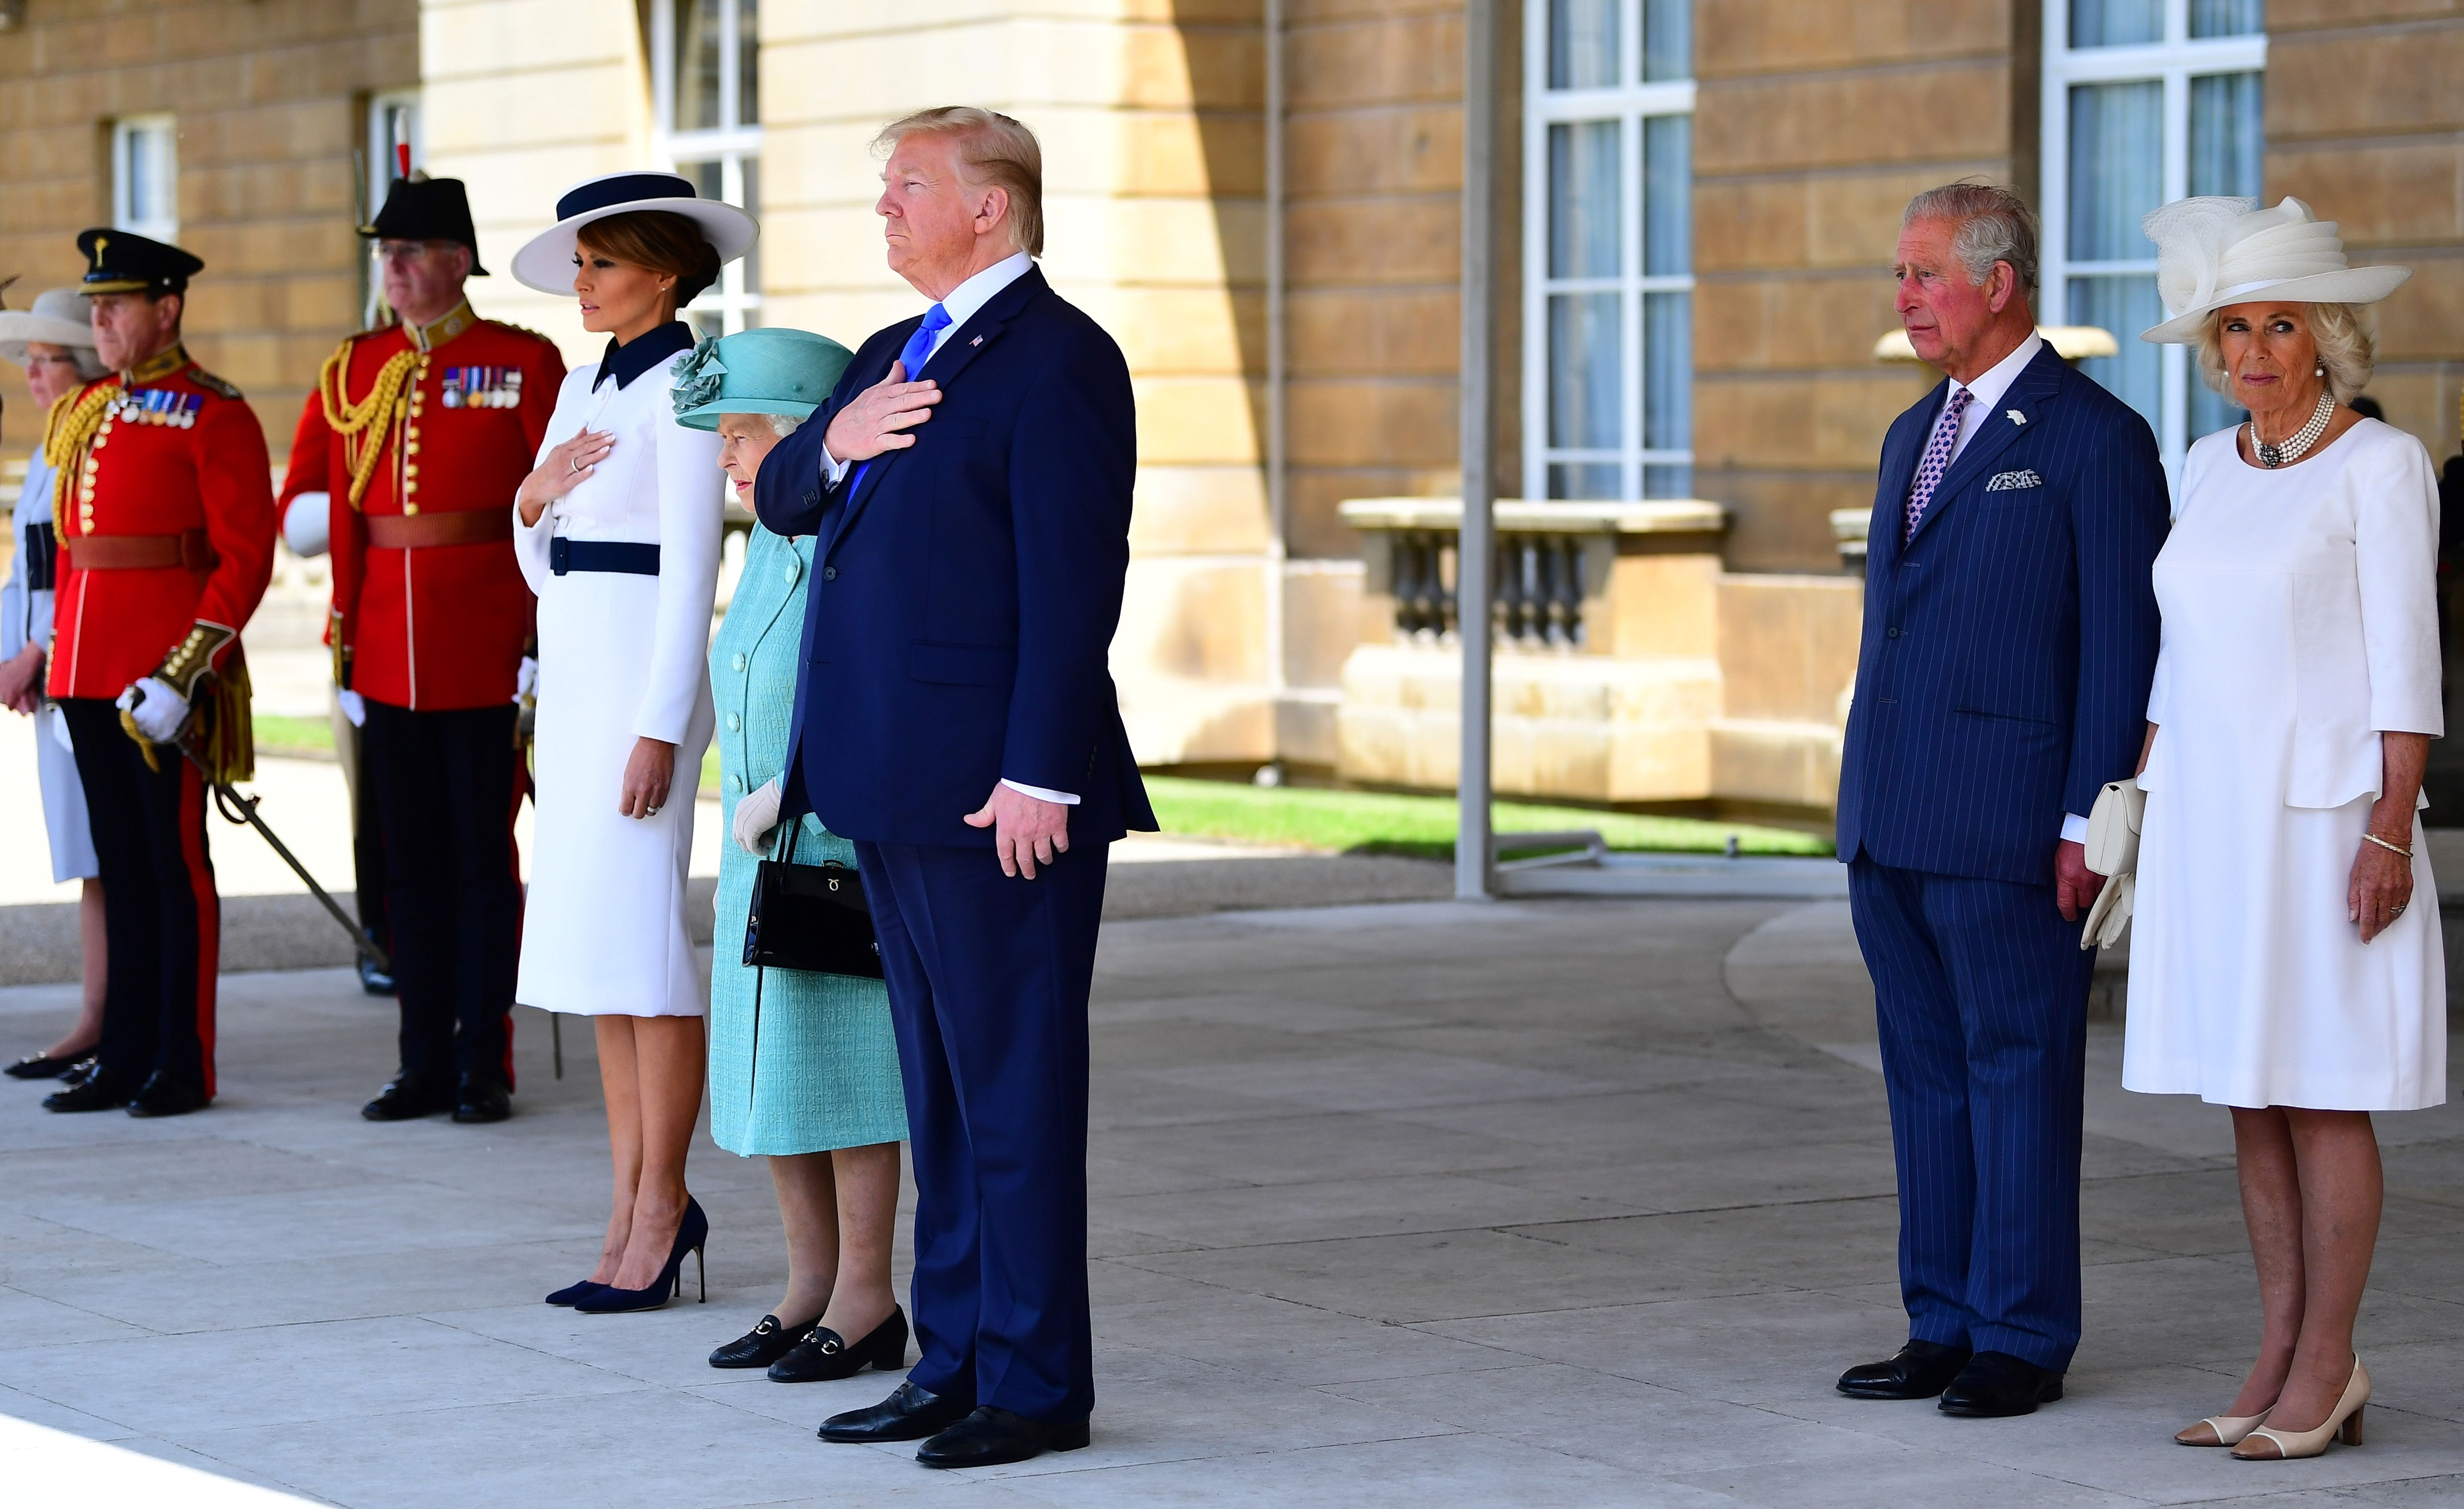 Britain's Queen Elizabeth II (4L) stands with US President Donald Trump (C), US First Lady Melania Trump (3L), Britain's Prince Charles, Prince of Wales (2R) and Britain's Camilla, Duchess of Cornwall as they listen to the US national anthem during a welcome ceremony at Buckingham Palace in central London on June 3, 2019, on the first day of the US president and First Lady's three-day State Visit to the UK. - Britain rolled out the red carpet for US President Donald Trump on June 3 as he arrived in Britain for a state visit already overshadowed by his outspoken remarks on Brexit. (Photo by Victoria Jones / POOL / AFP)        (Photo credit should read VICTORIA JONES/AFP/Getty Images)